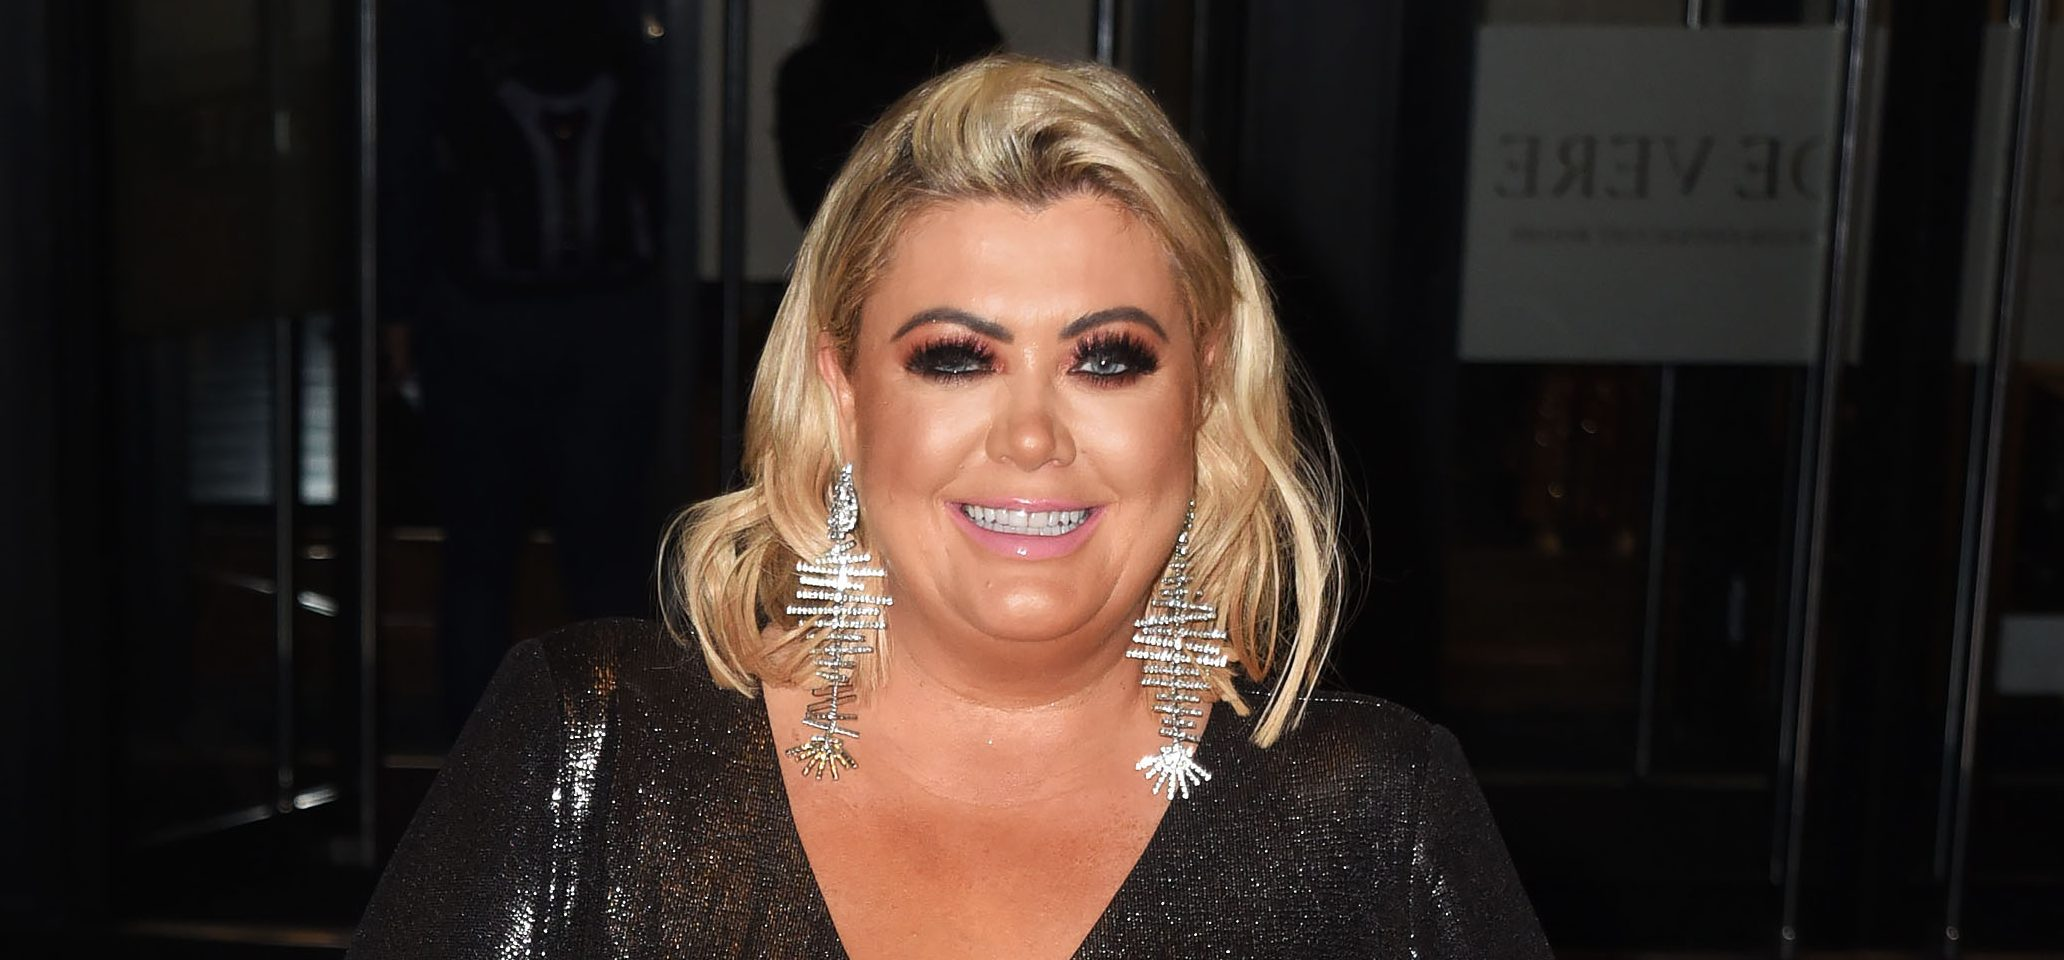 Gemma Collins debuts new hair as she shows off her weight loss in London